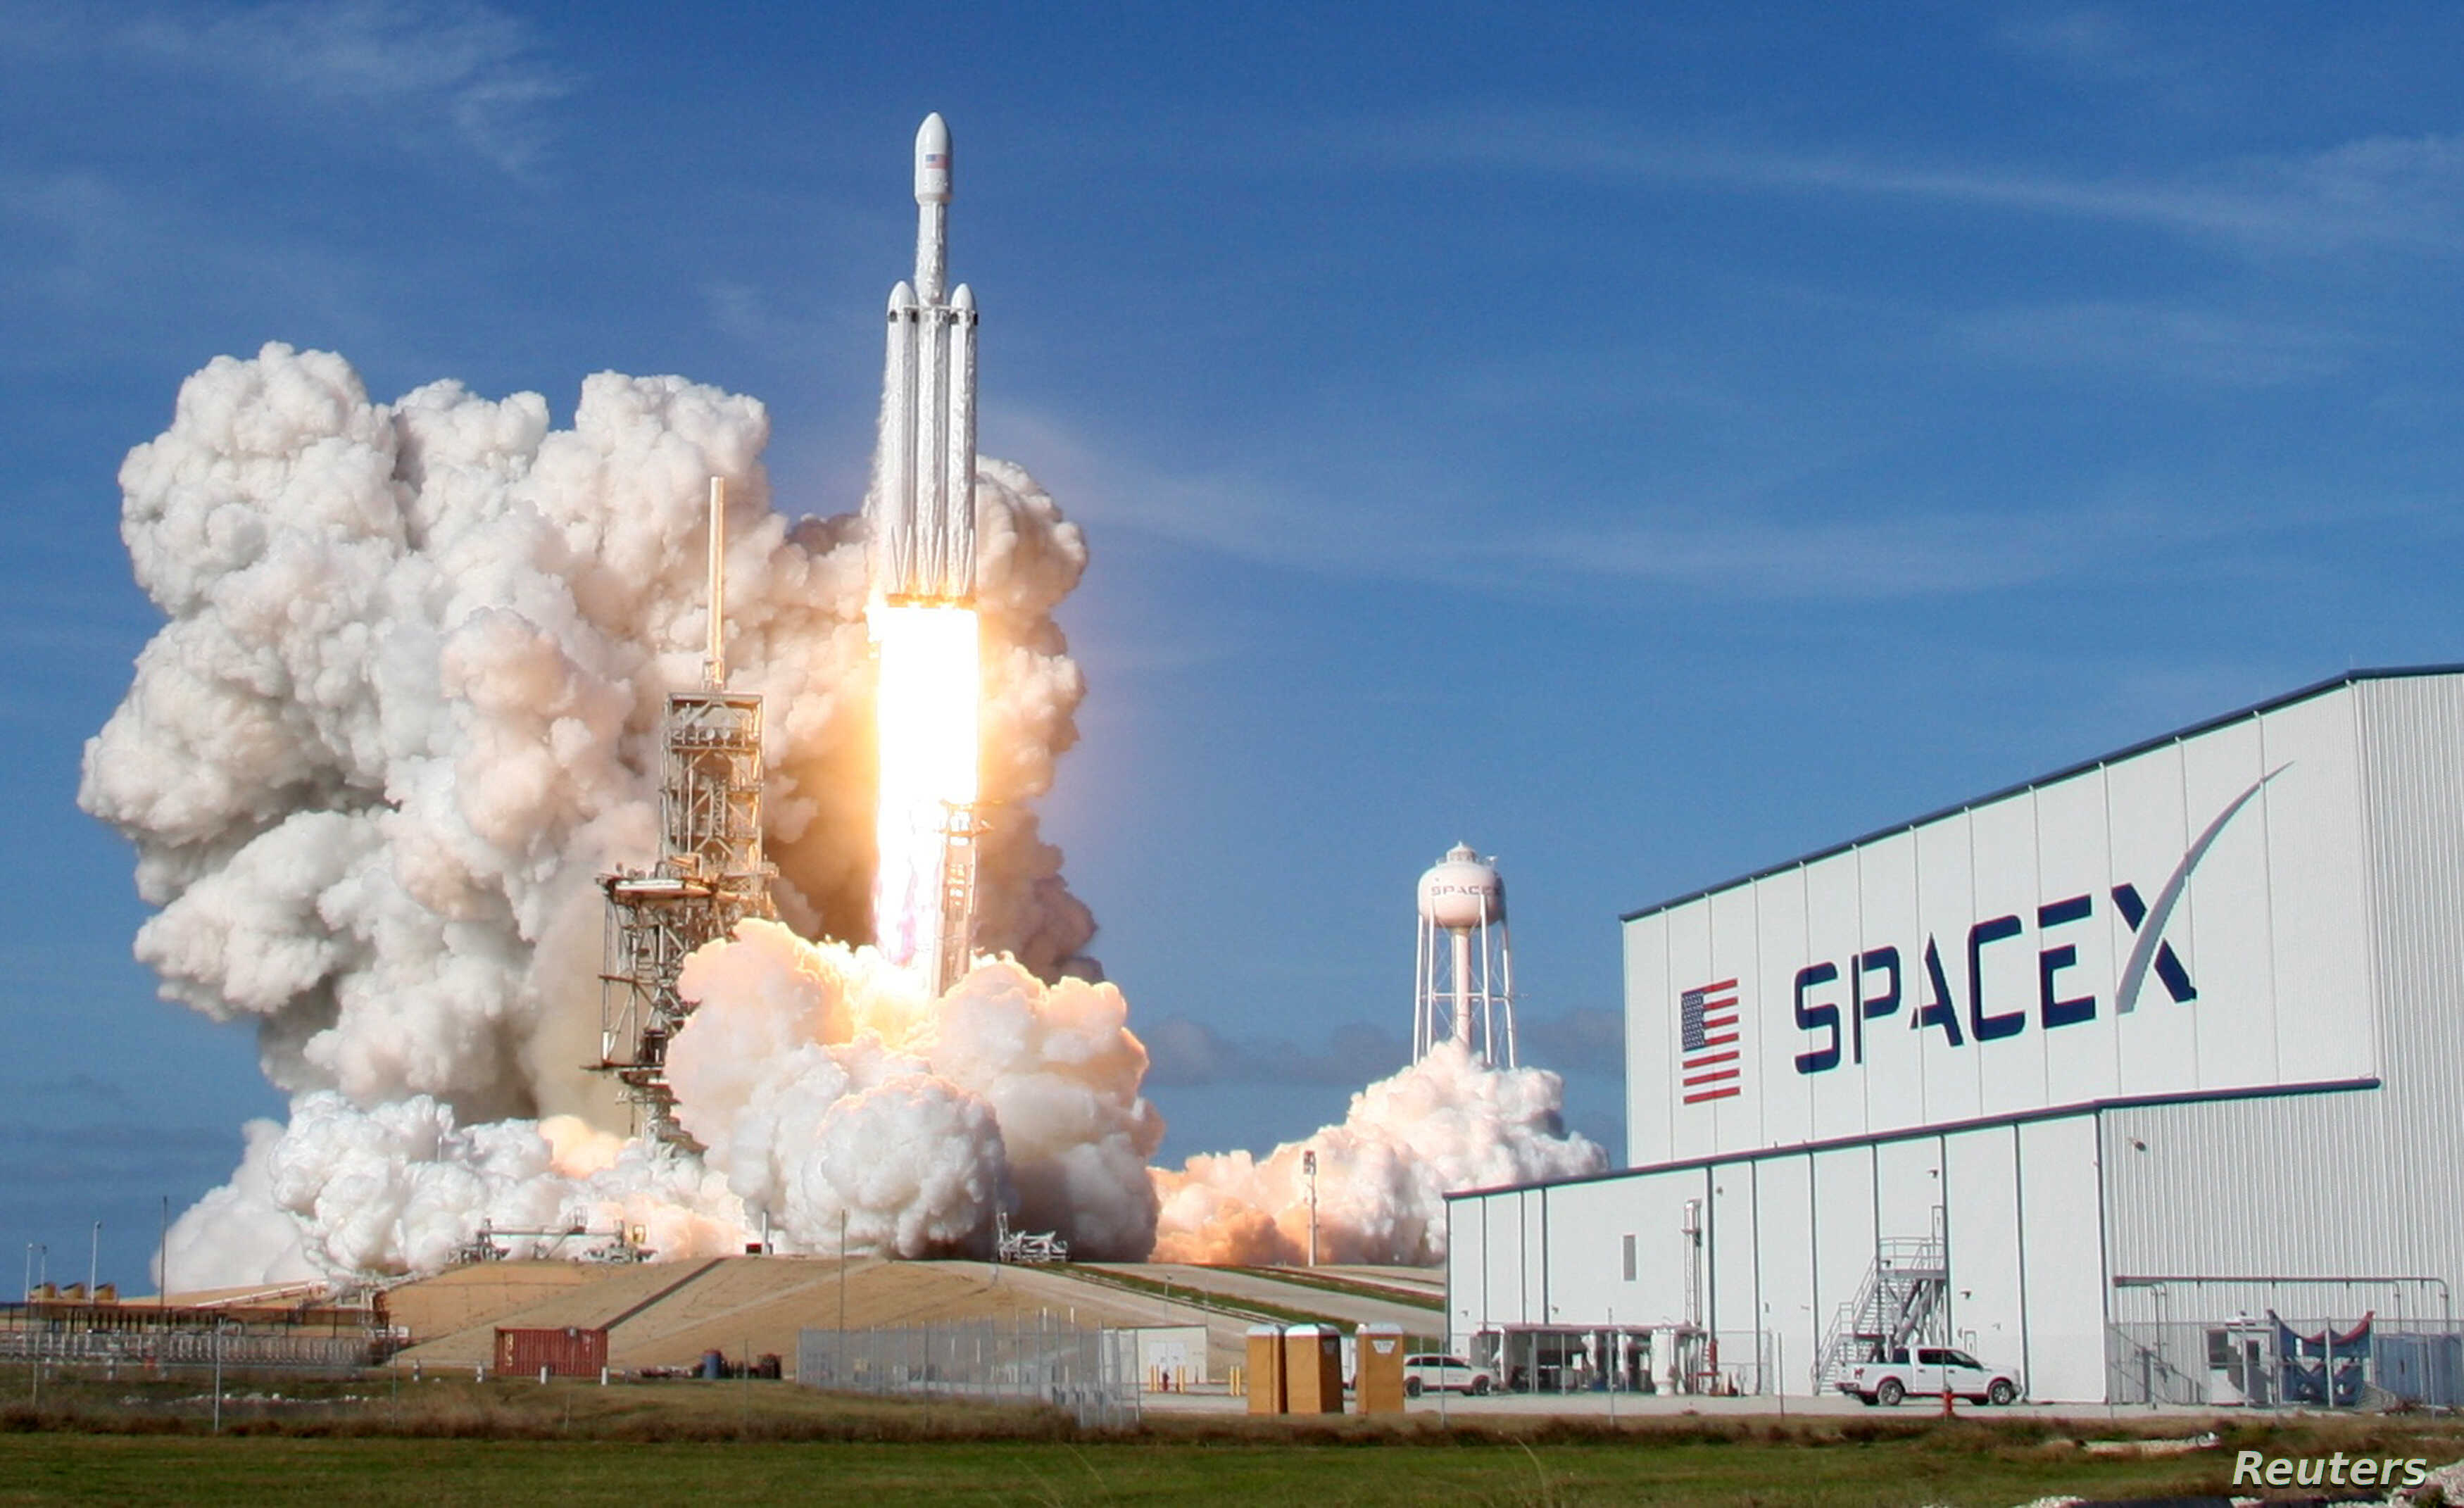 SpaceX made history by becoming the world's first commercial company to send humans into orbit.